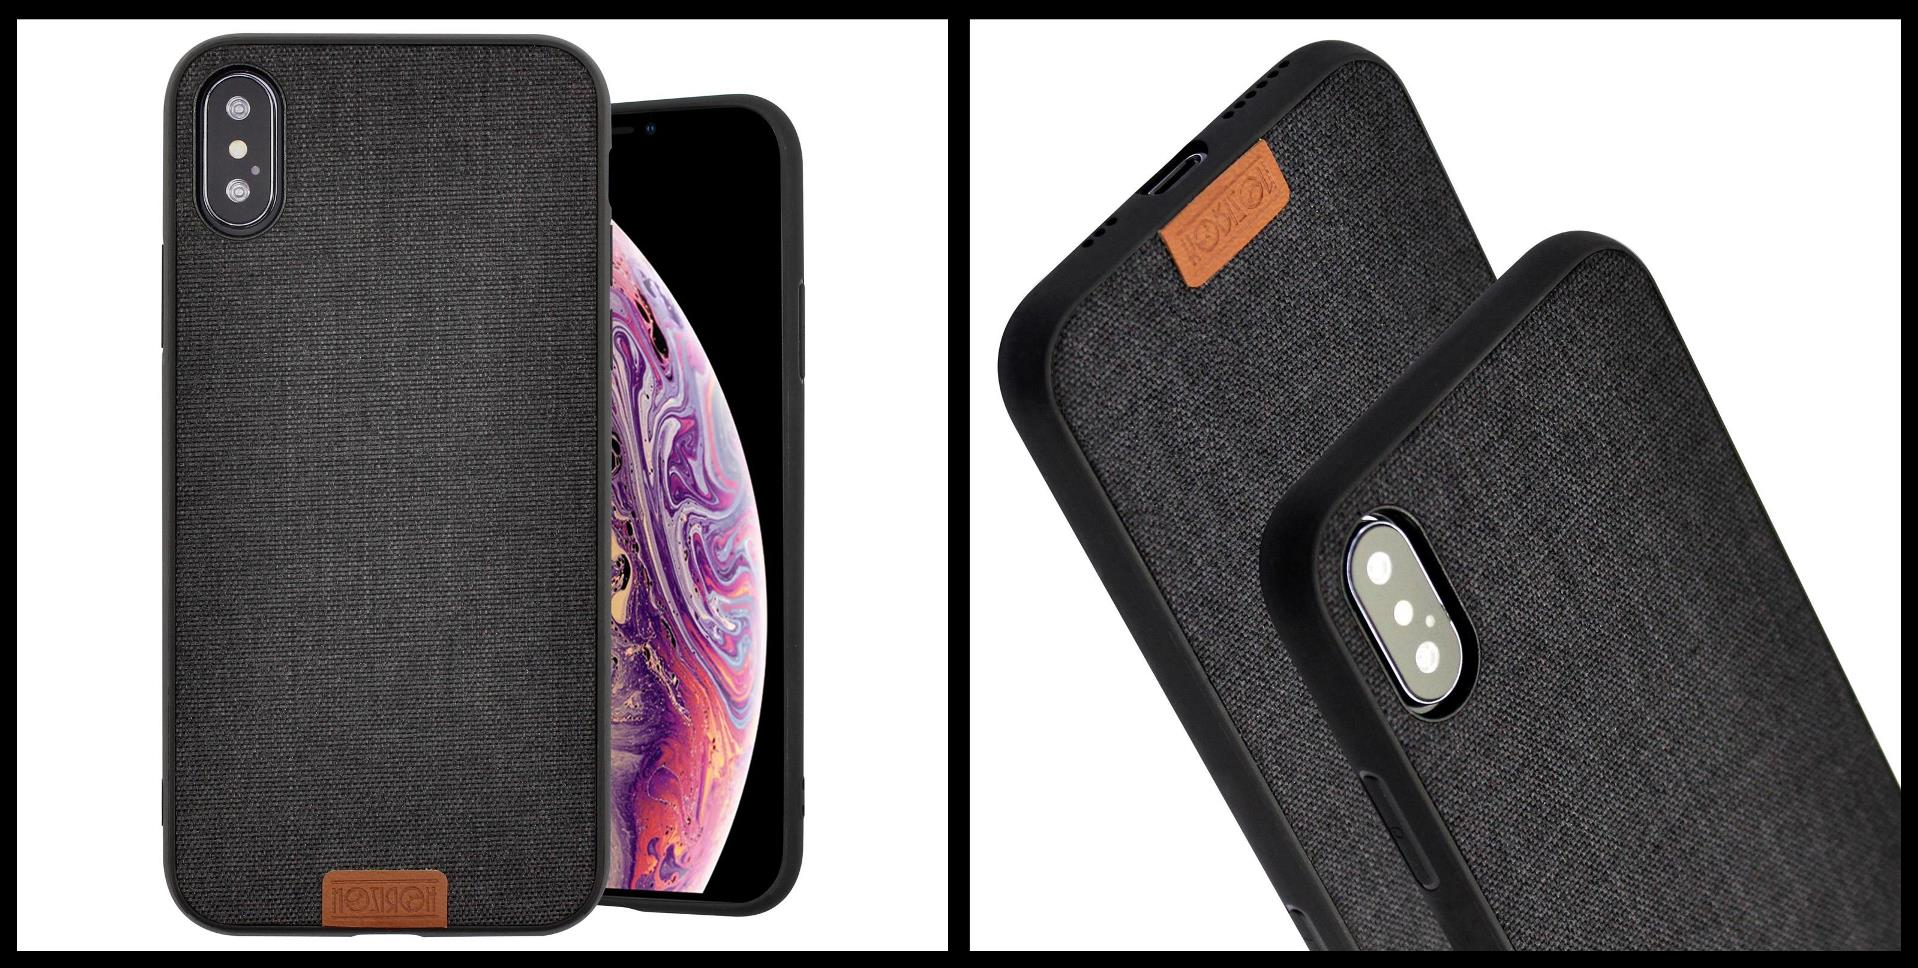 noziroh-jeans-apple-iphone-xs-x-cover-case-shockproof-slim-design-black-blue-red